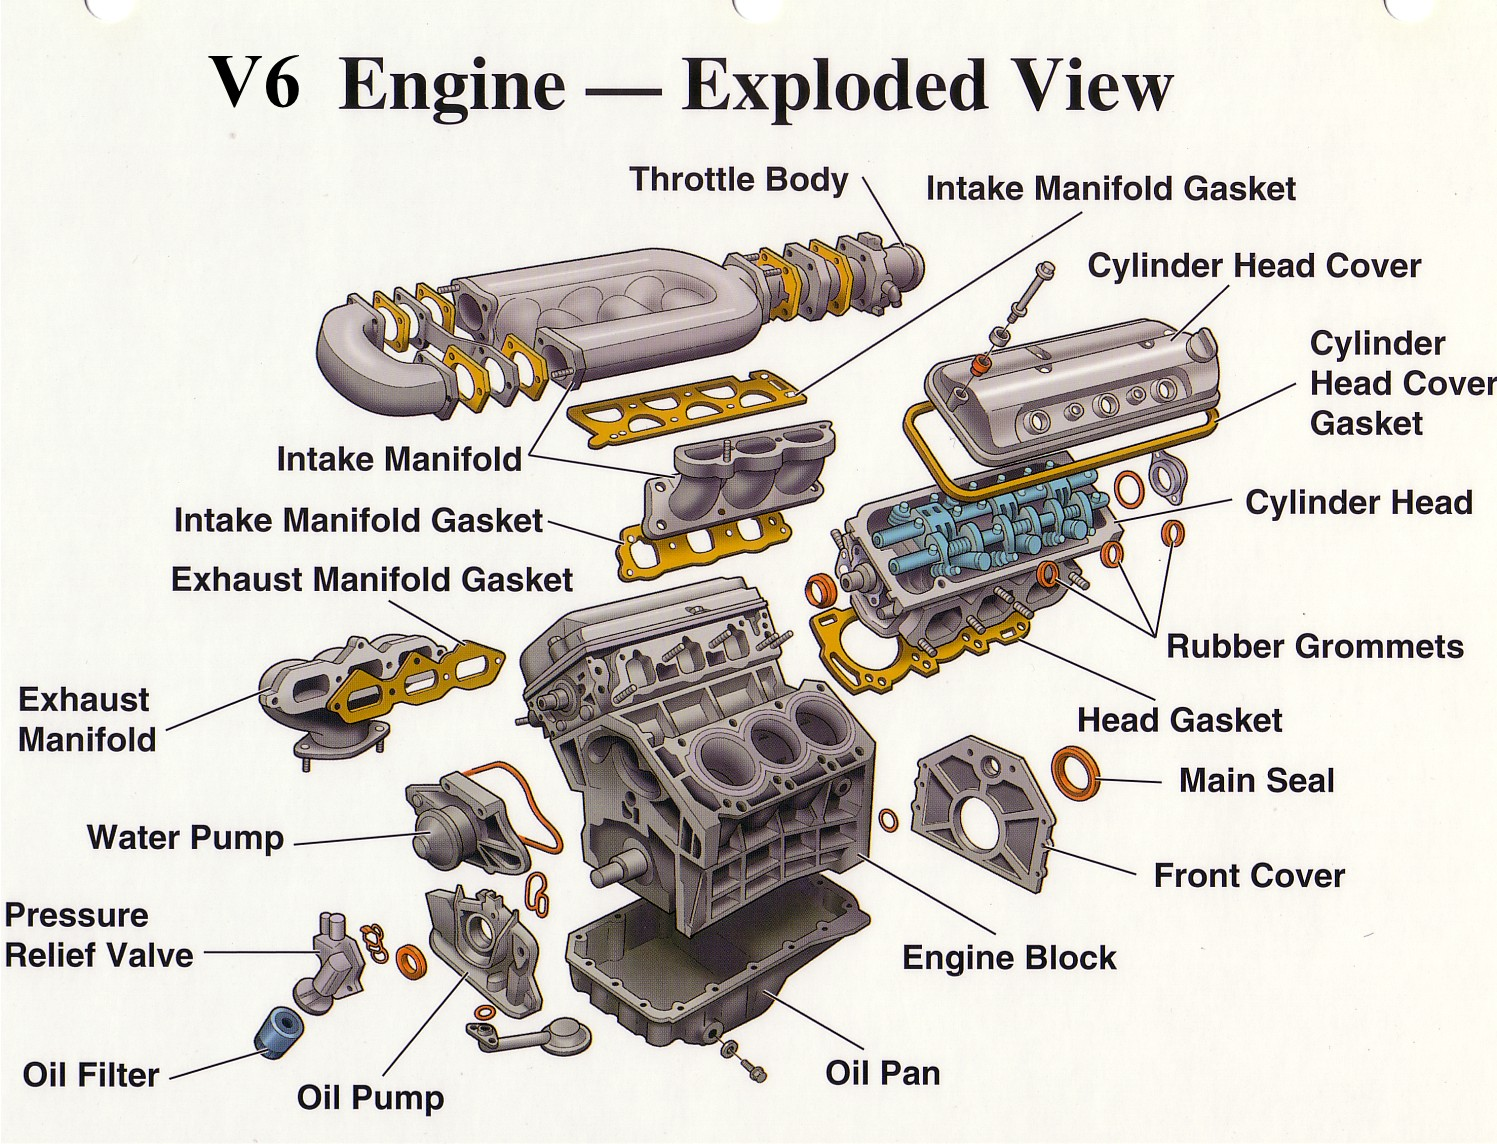 V6 Engine Exploded View - Members Gallery